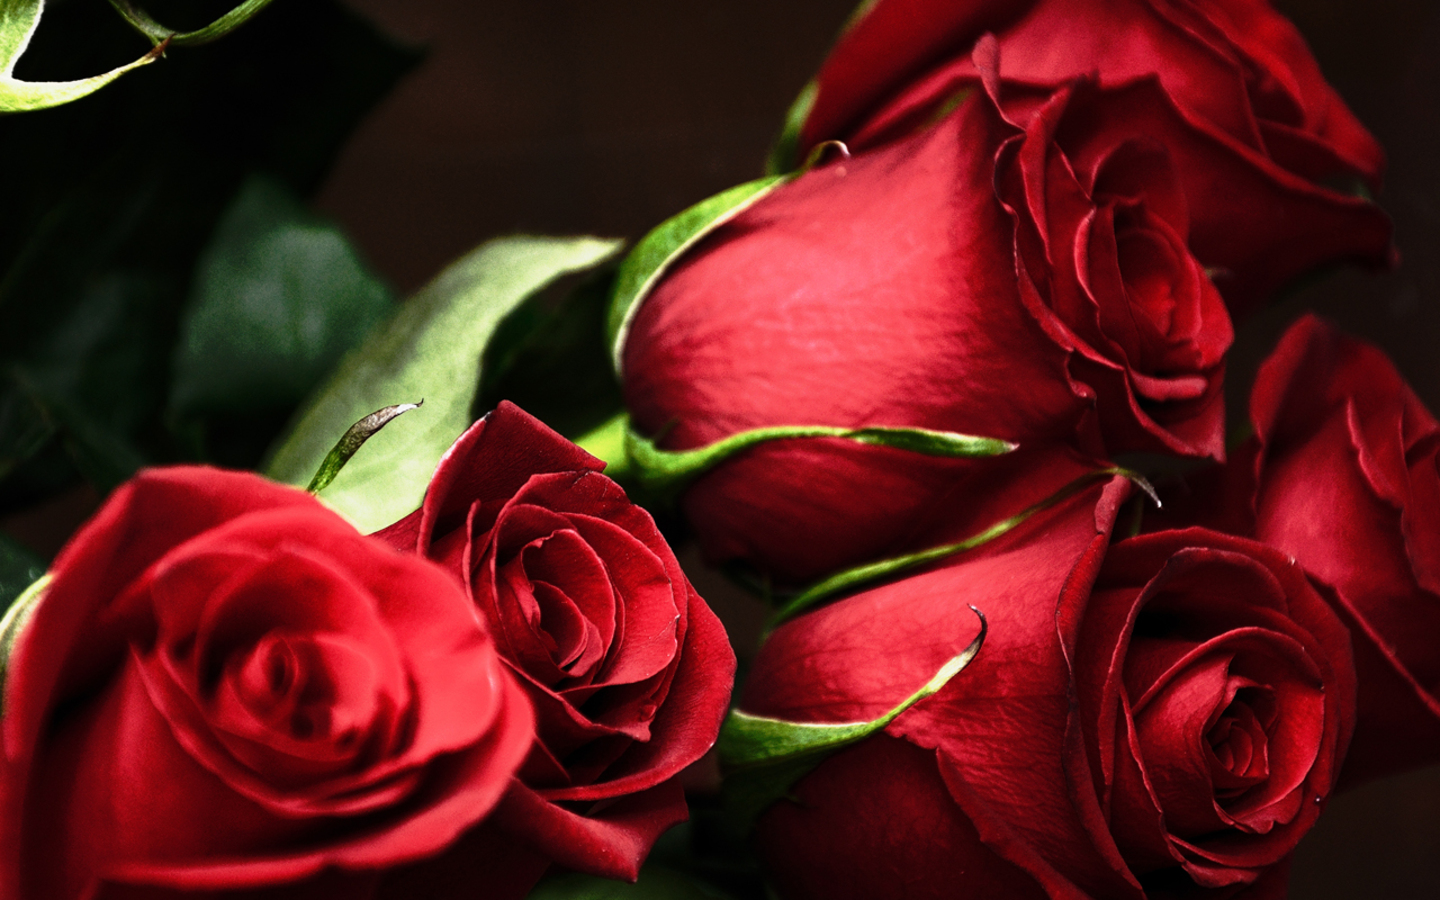 red roses, most popular rose, rose wallpapers, beautiful rose, red